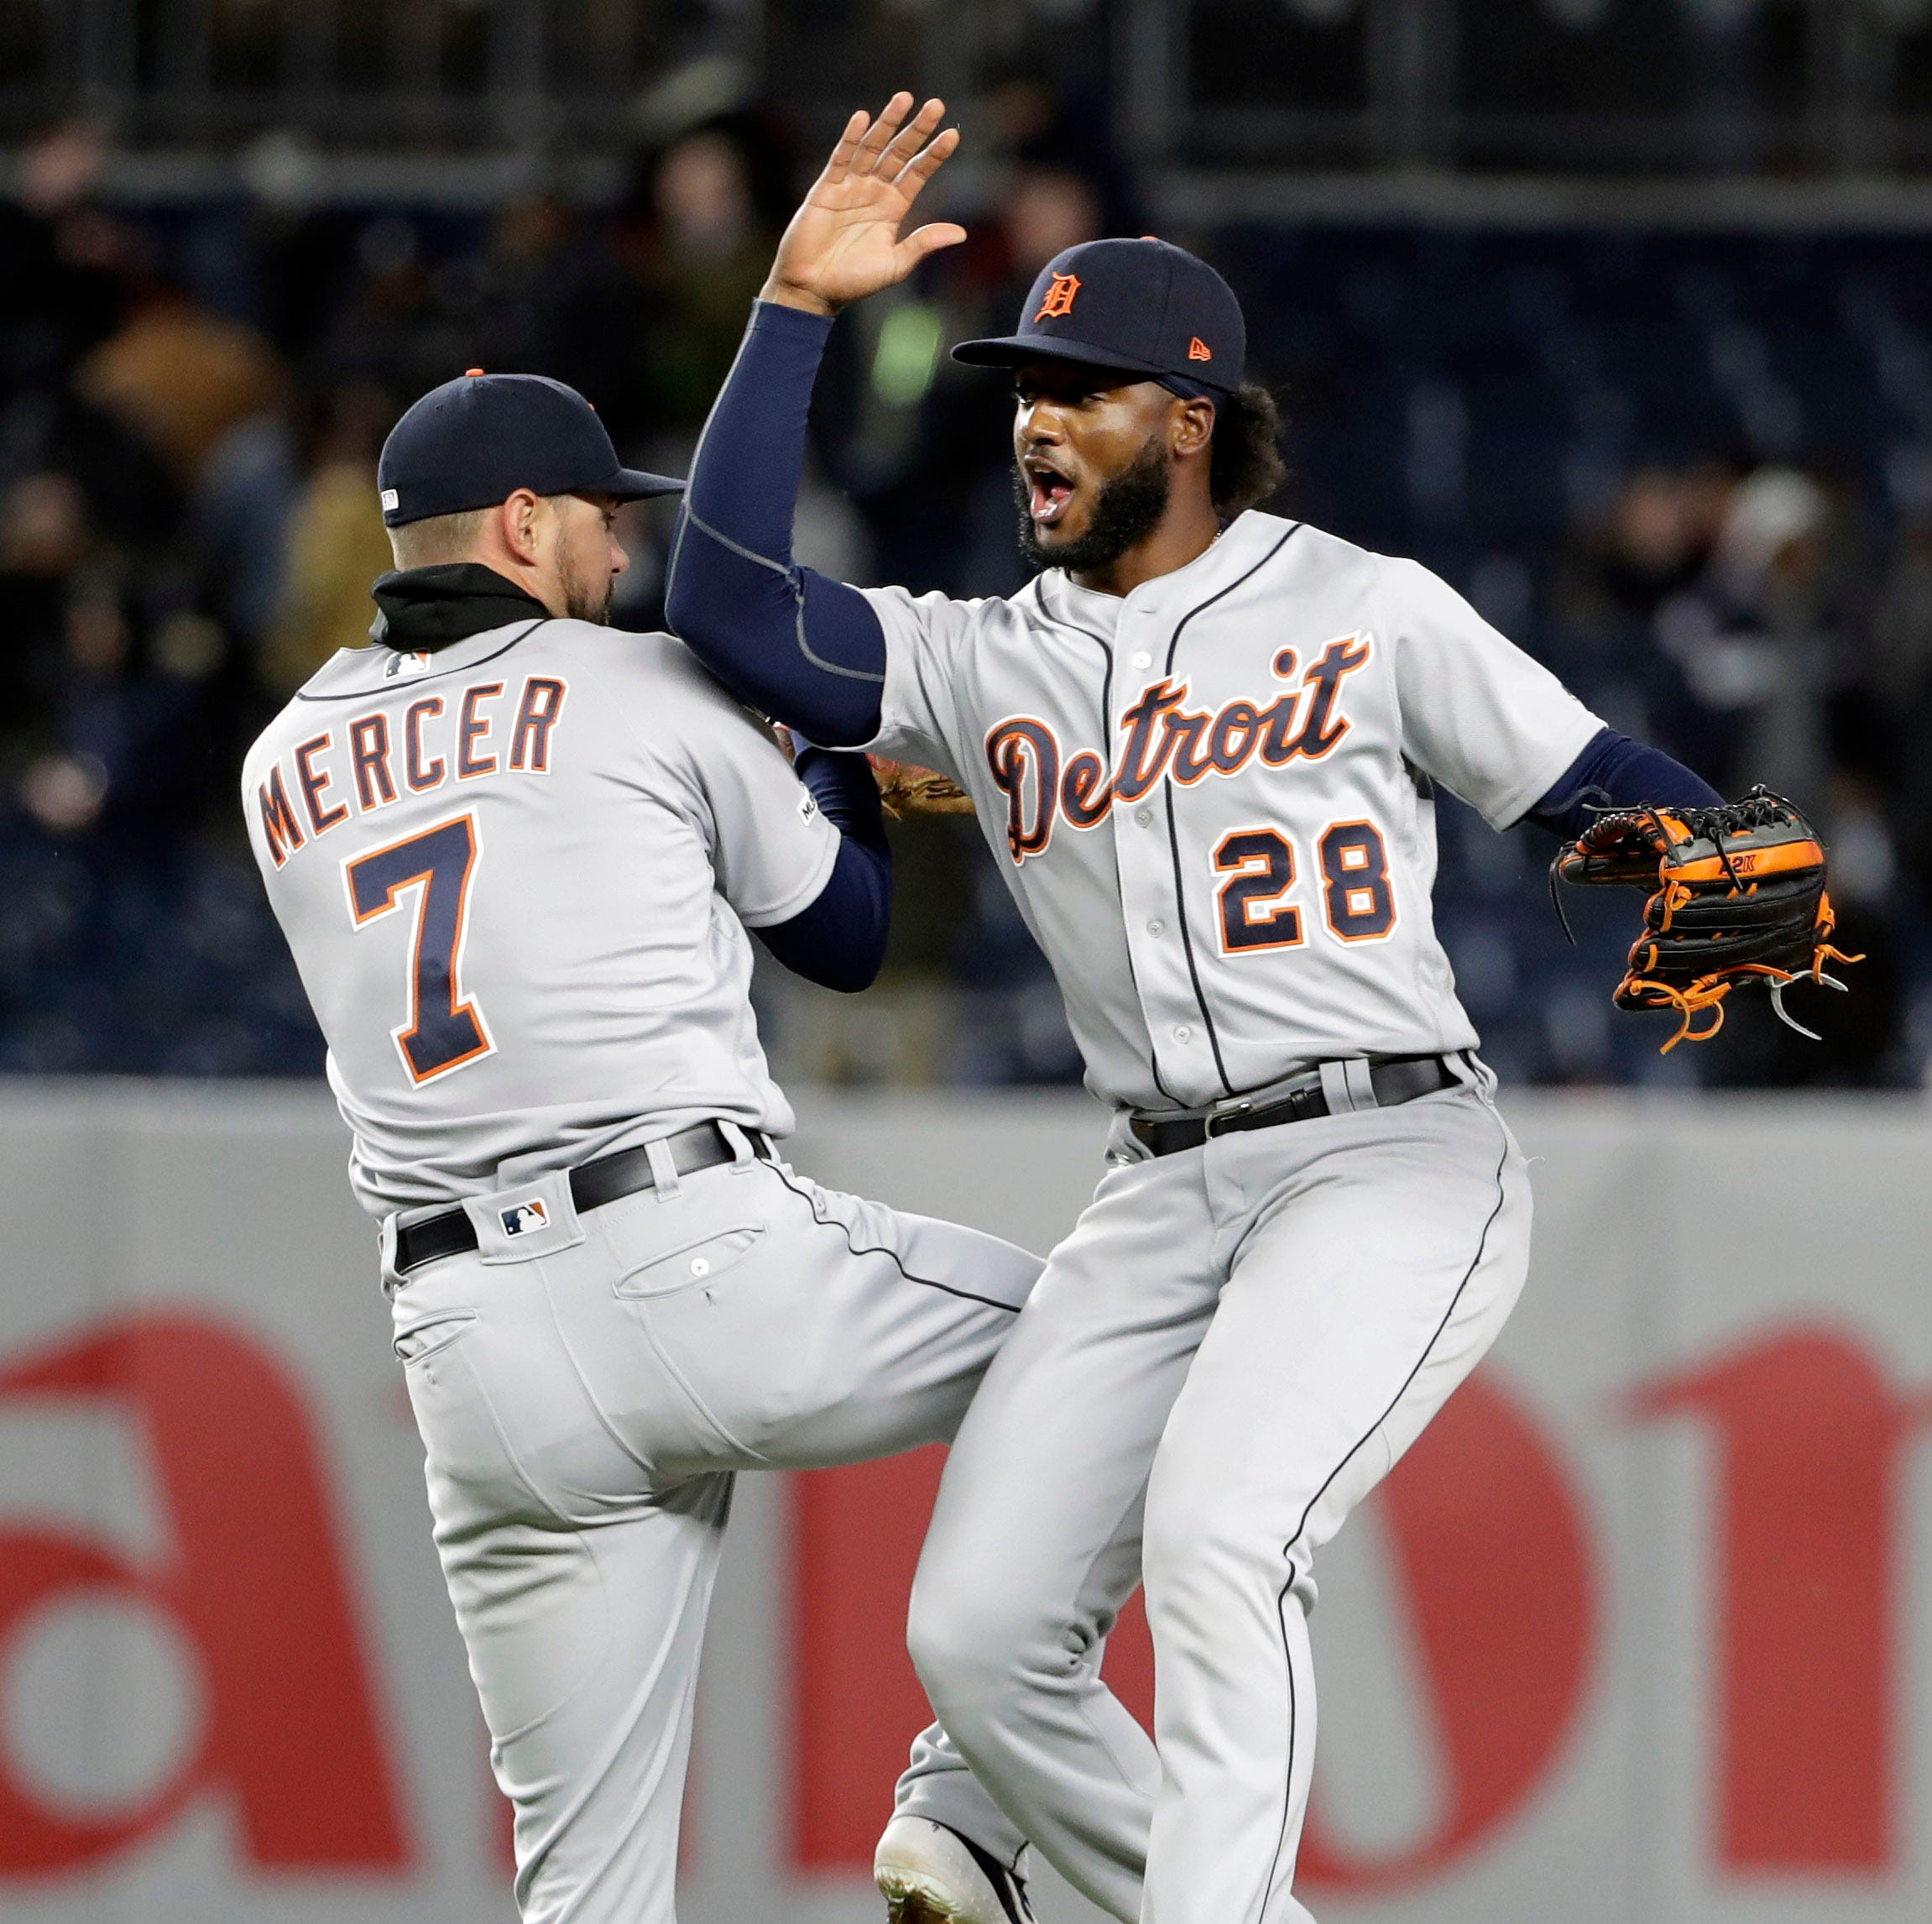 'Honestly, I blacked out': Dustin Peterson's first major-league hit helps Tigers knock off Yankees